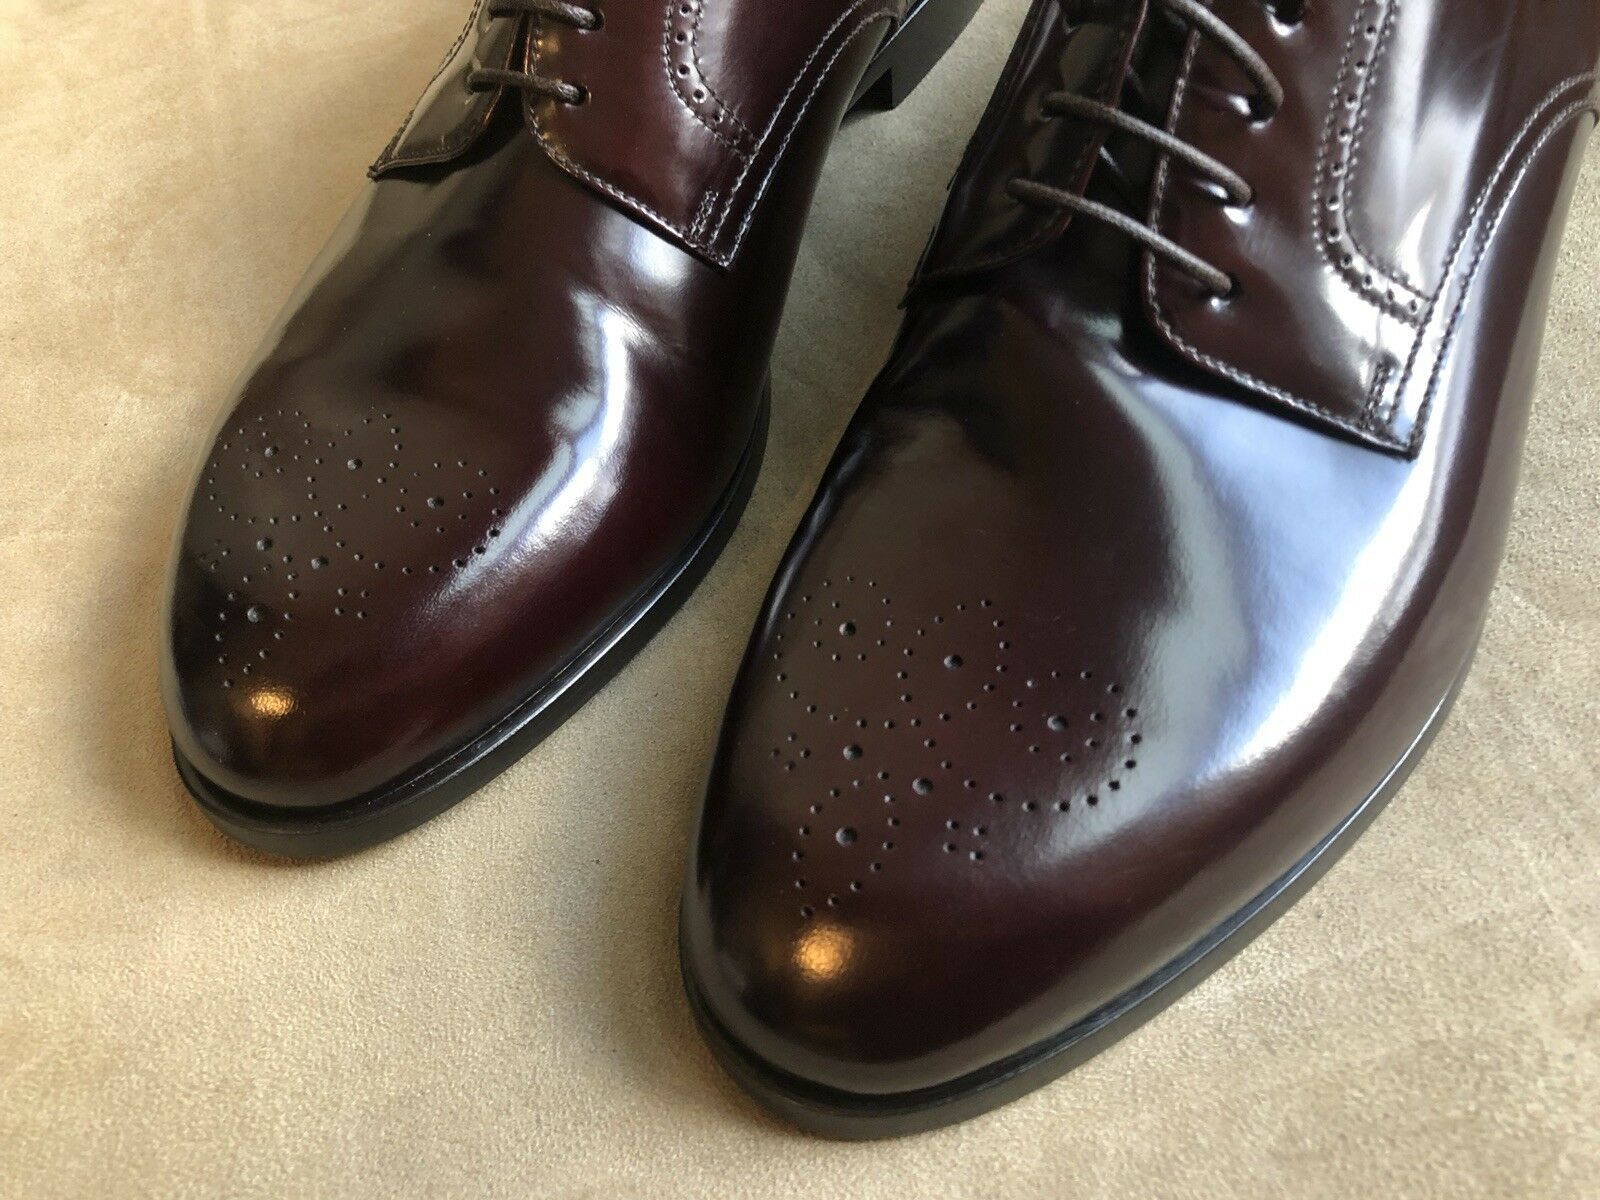 GIORGIO ARMANI DETAILS BAROLO DEEP BURGUNDY OXFORDS WITH BROGUE DETAILS ARMANI S 10 RP  845.00 d9a7d0